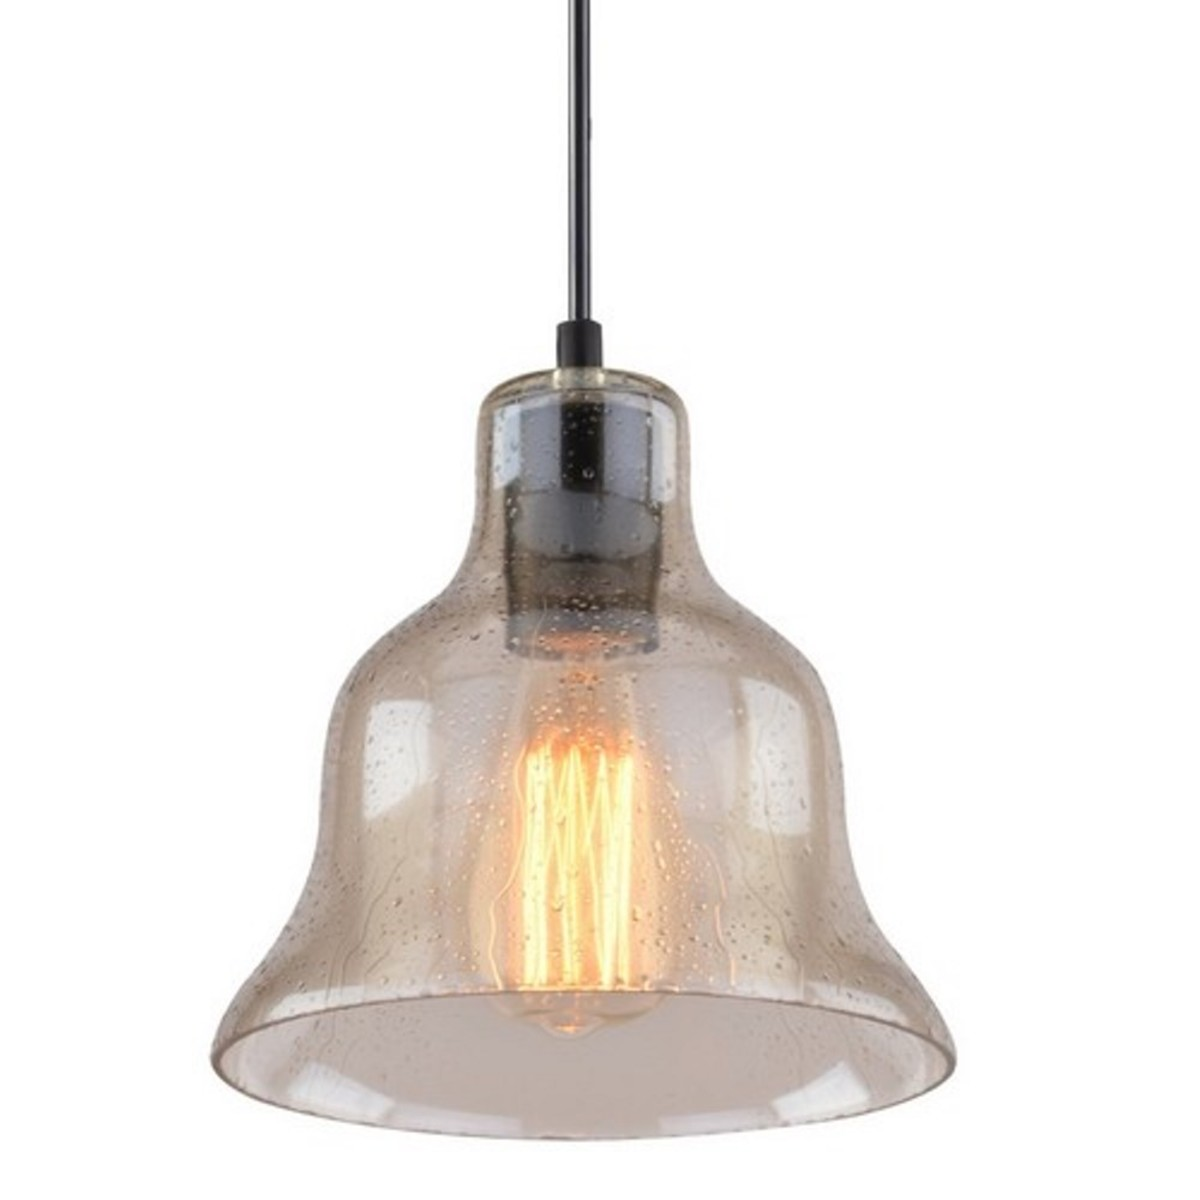 Люстра Arte Lamp Amiata A4255SP-1AM E27 1 лампа